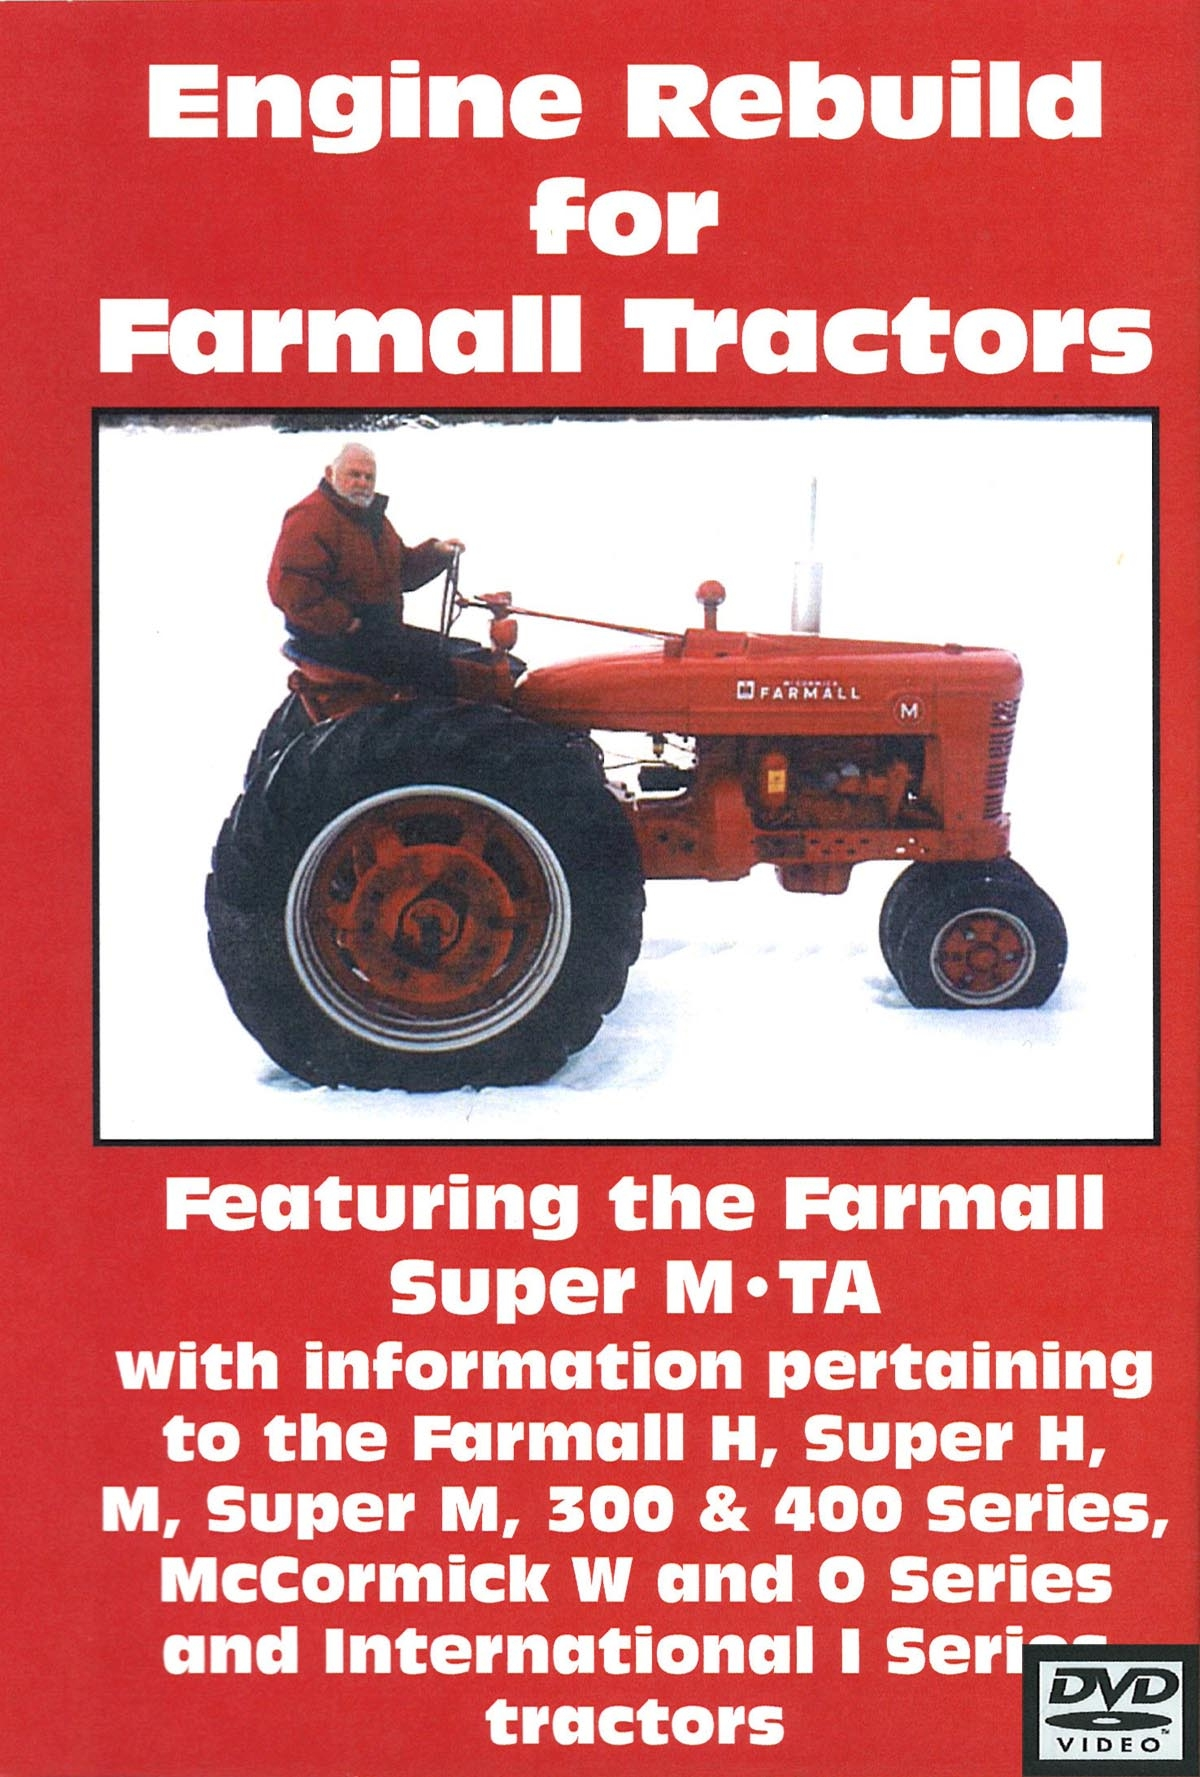 Farmall 300 Parts : Farmall m h  engine rebuild video dvd toys